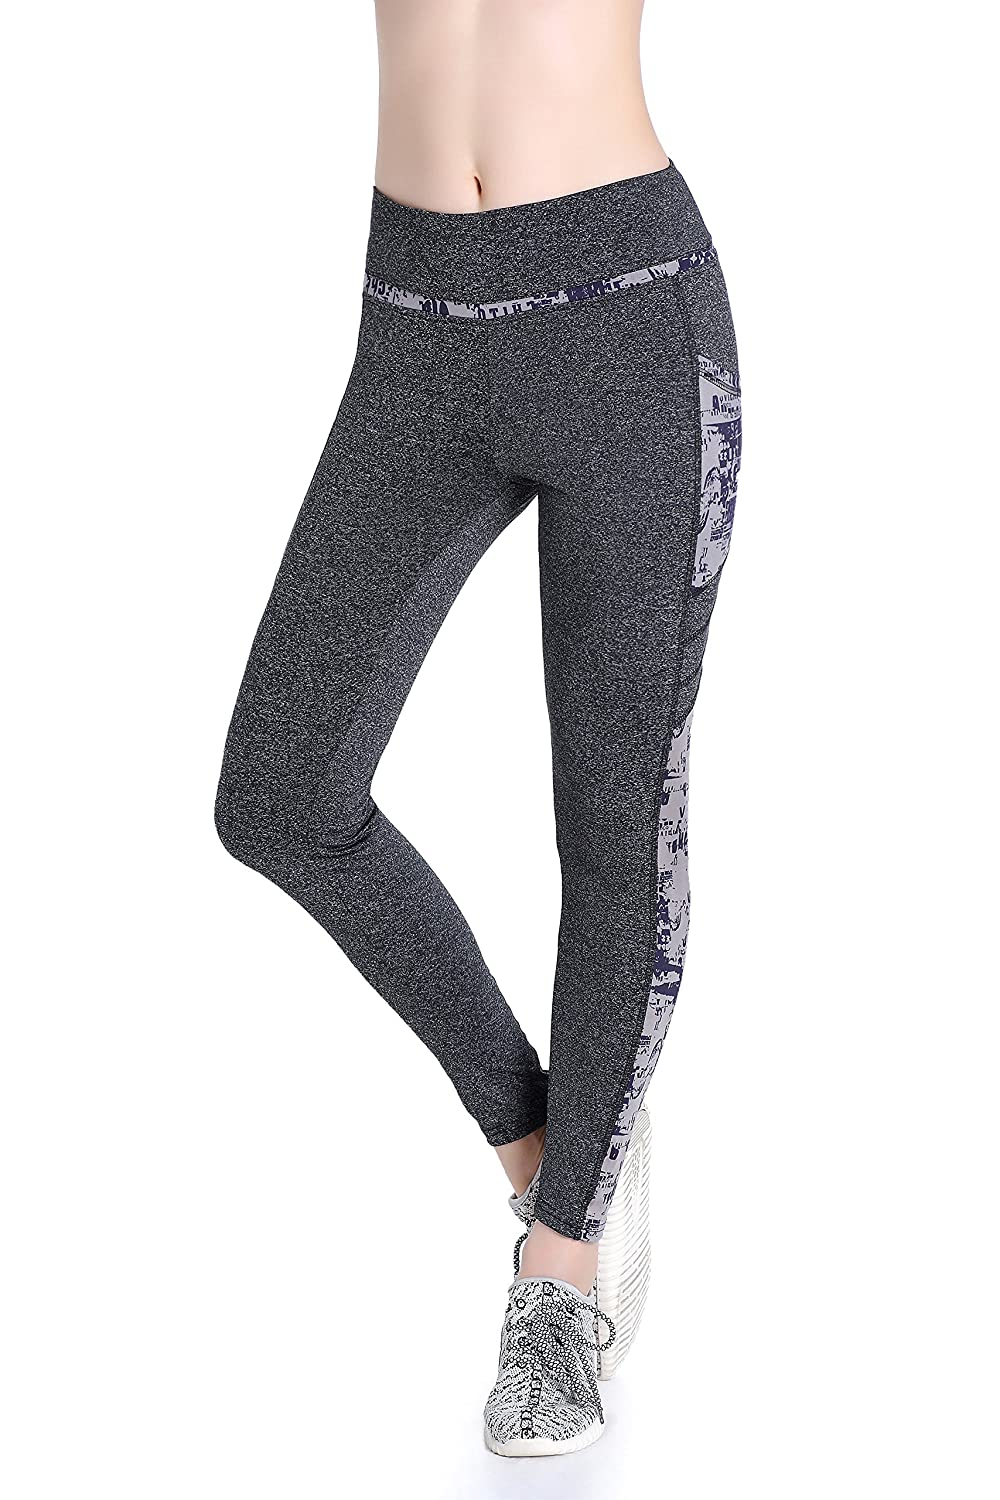 Annjoli Womens Workout Running Exercise Capris Pants Running Tights with Pockets